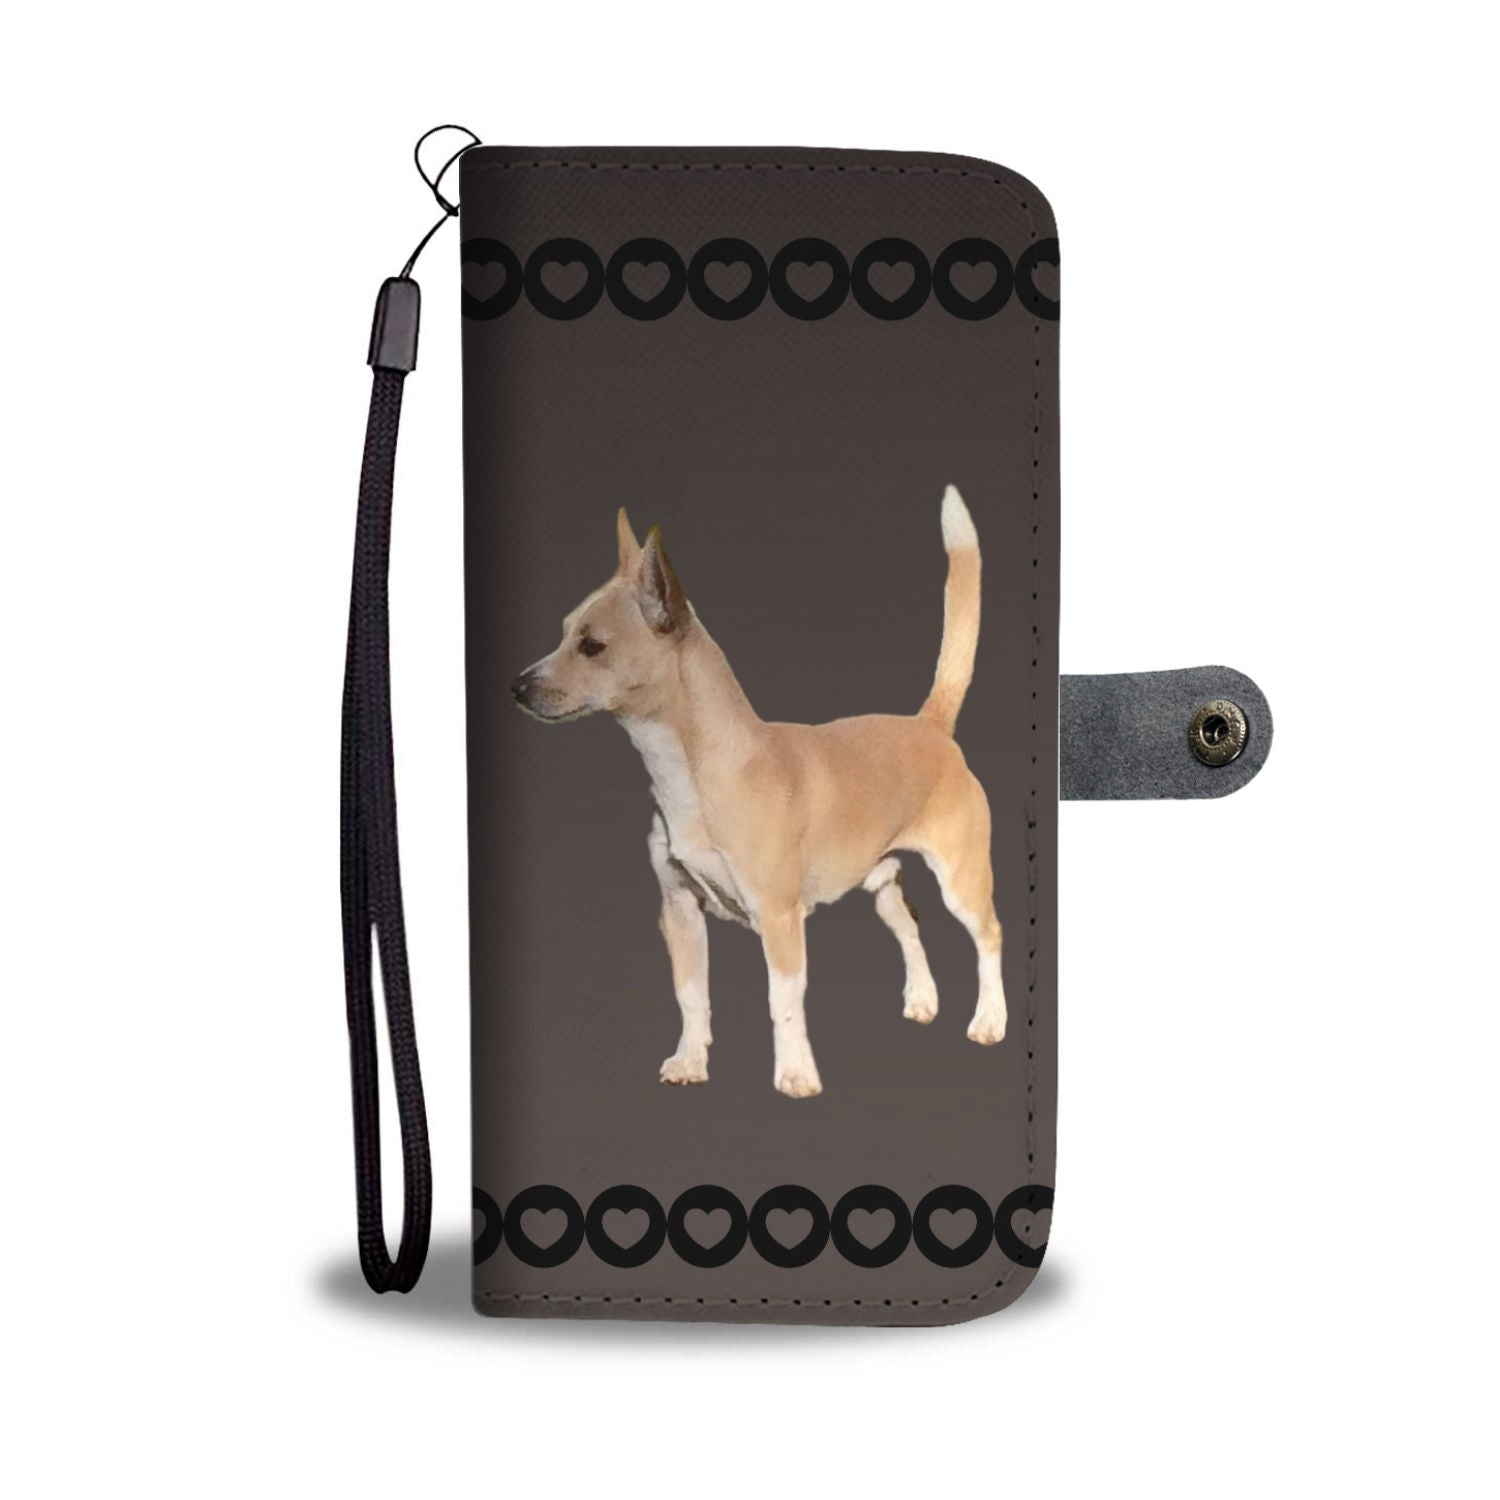 Portuguese Podengo Small Smooth-Haired Phone Case Wallet